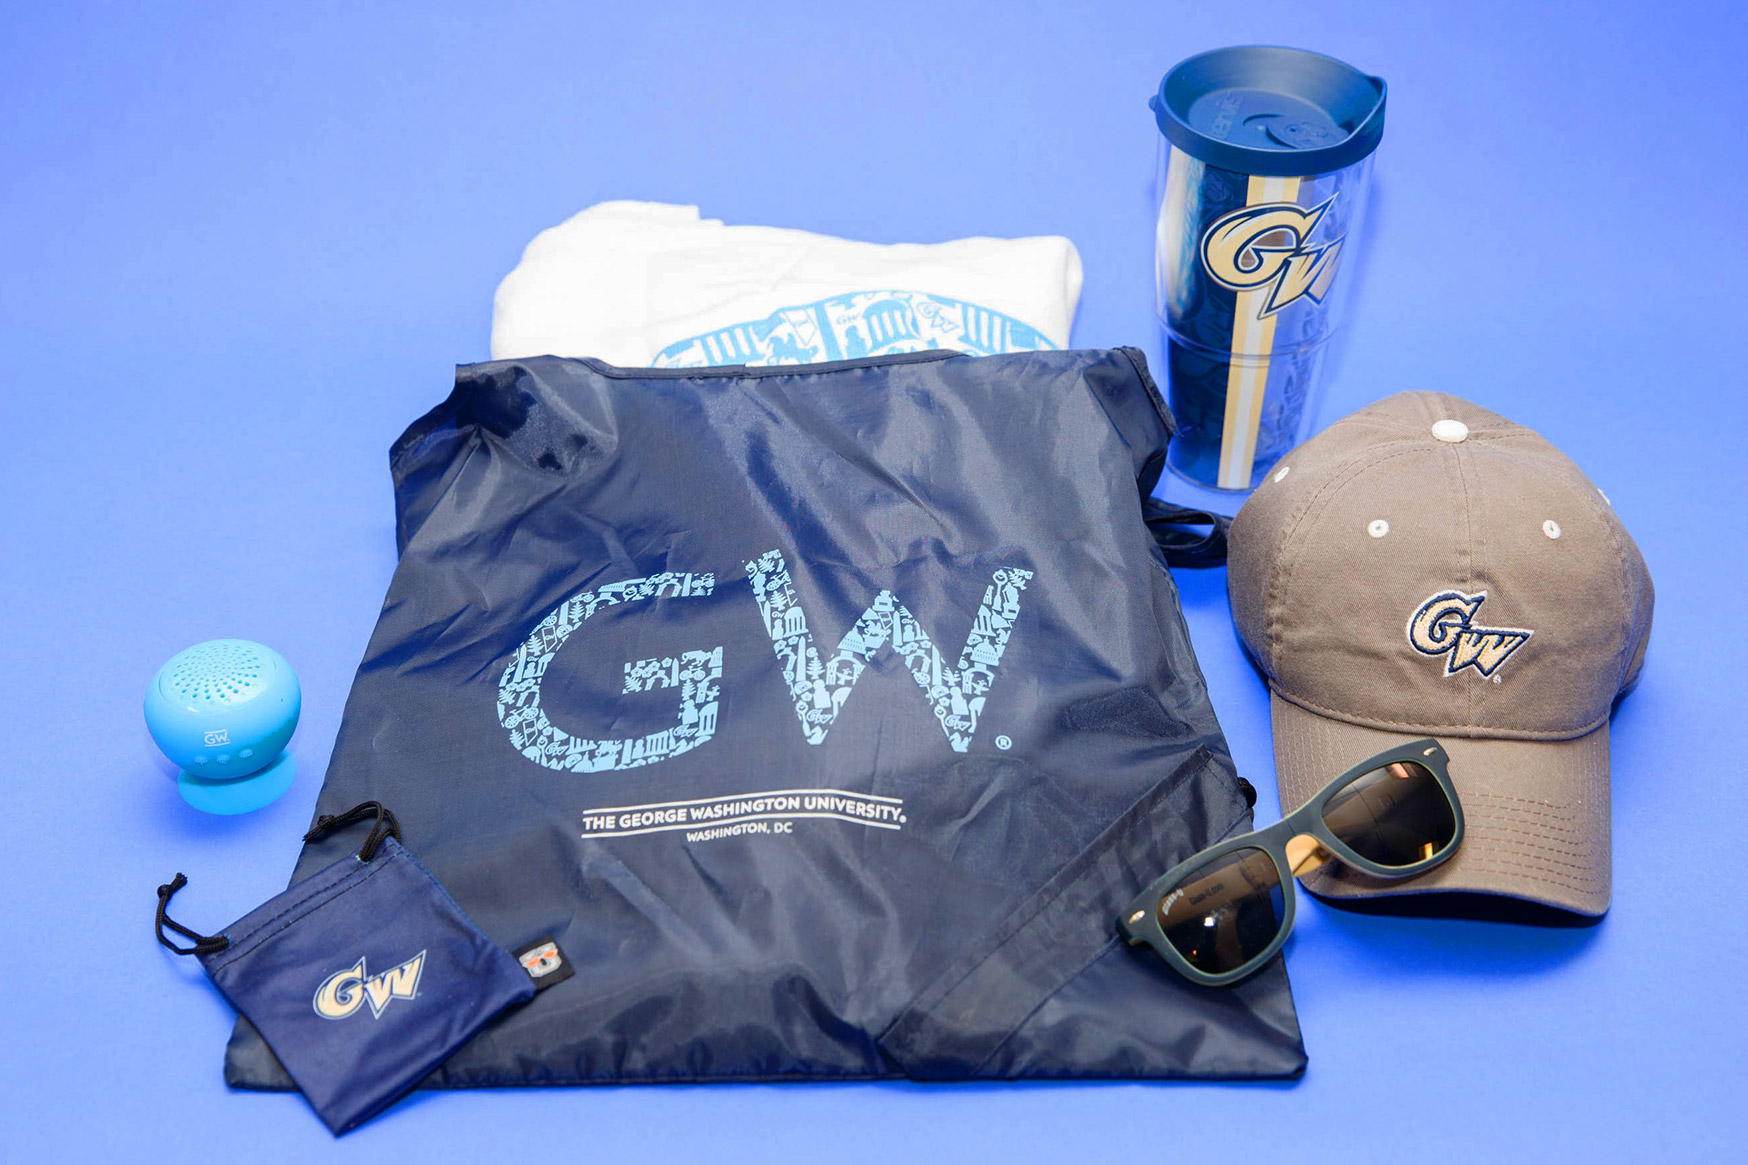 Prizes include a GW beach towel, portable speaker, water bottle and sunglasses